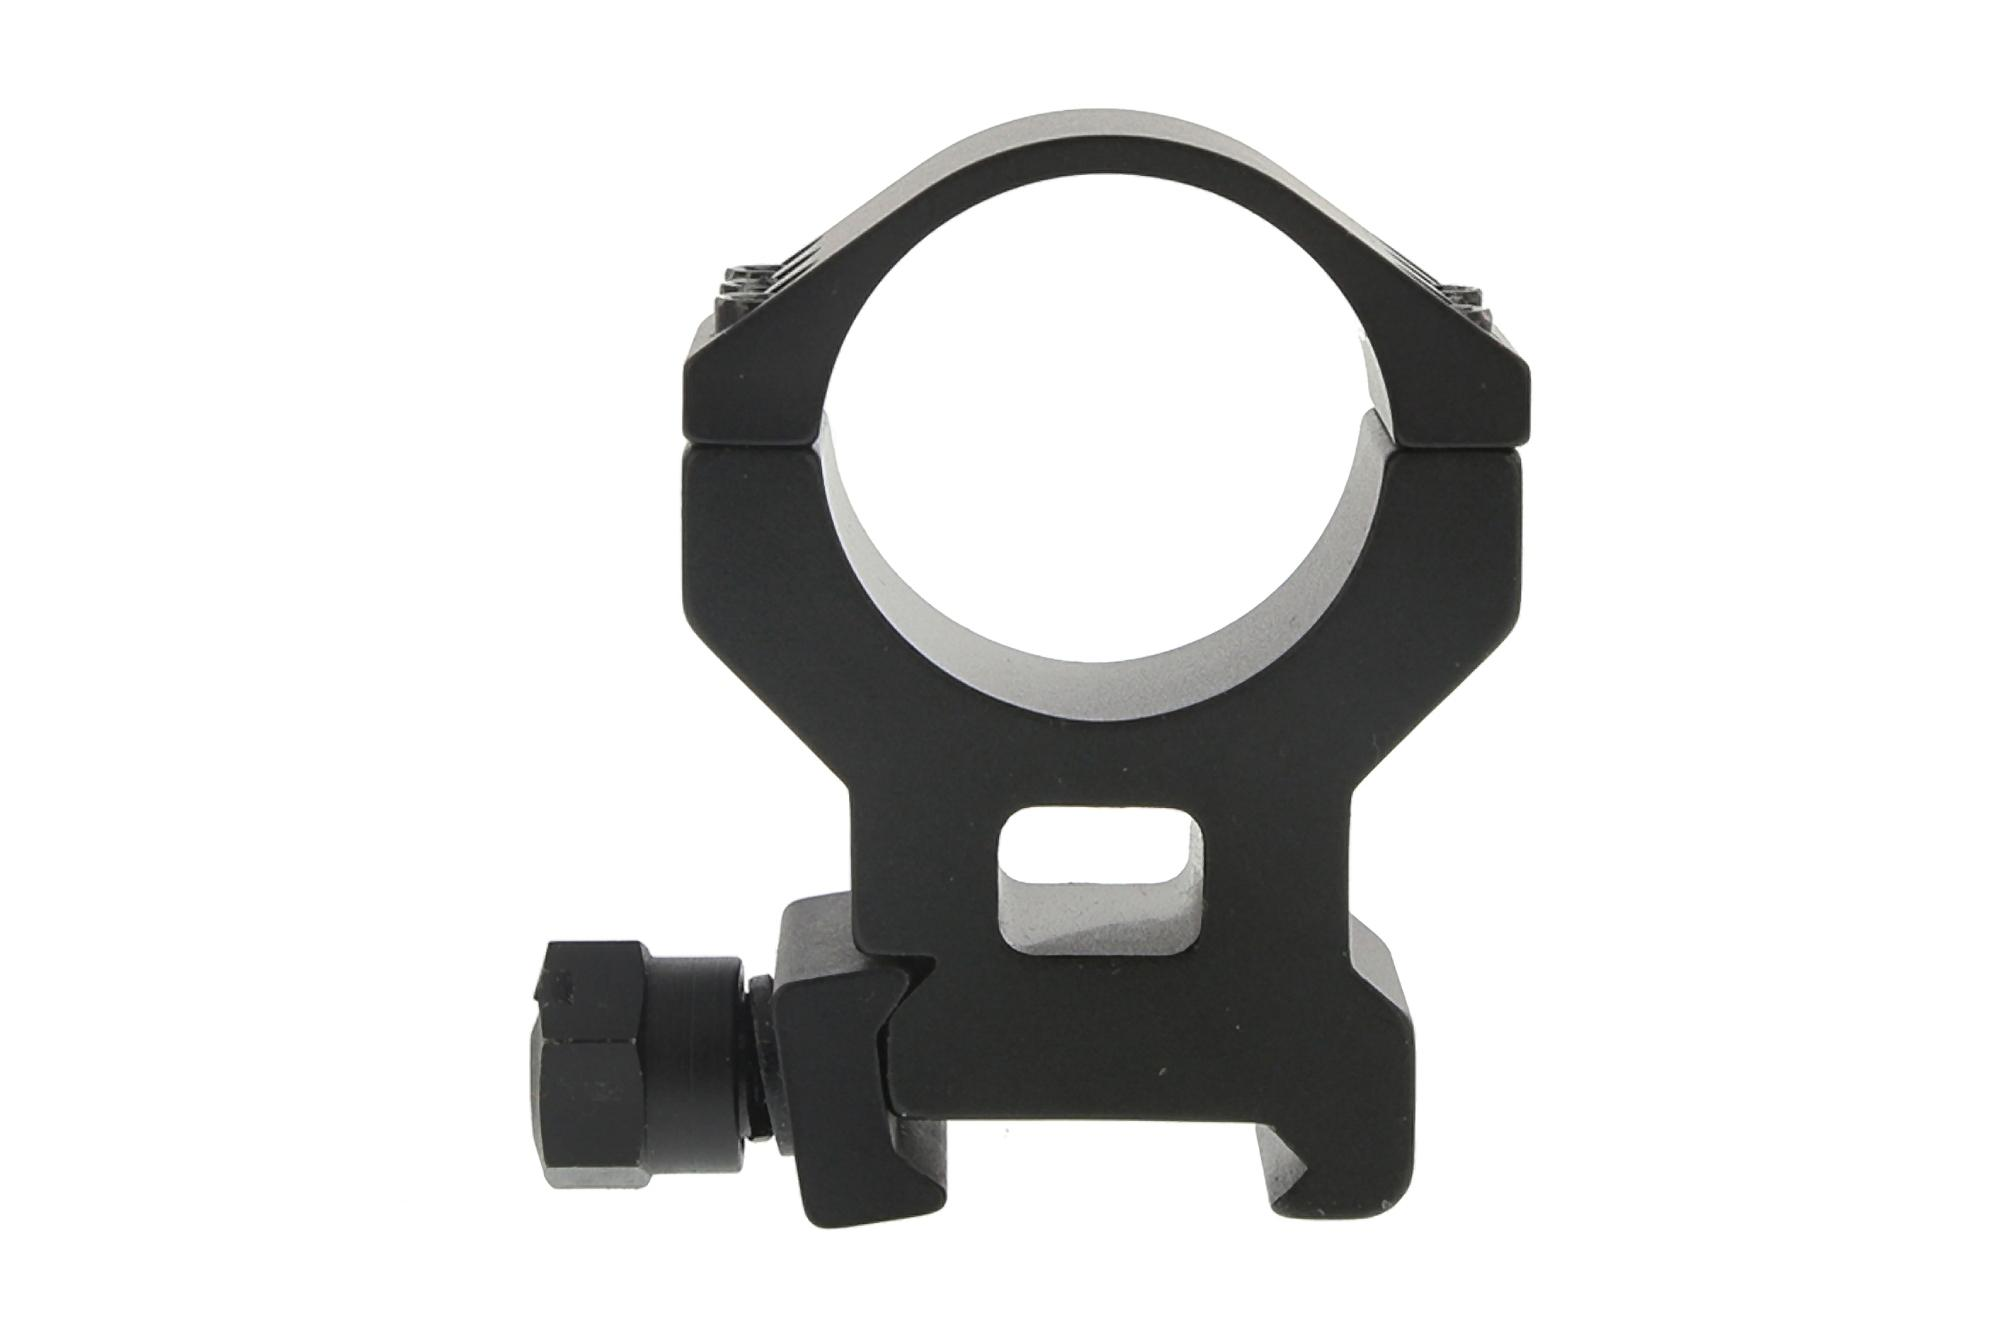 The Primary Arms 30mm scope ring absolute co witness mount features a lightweight design